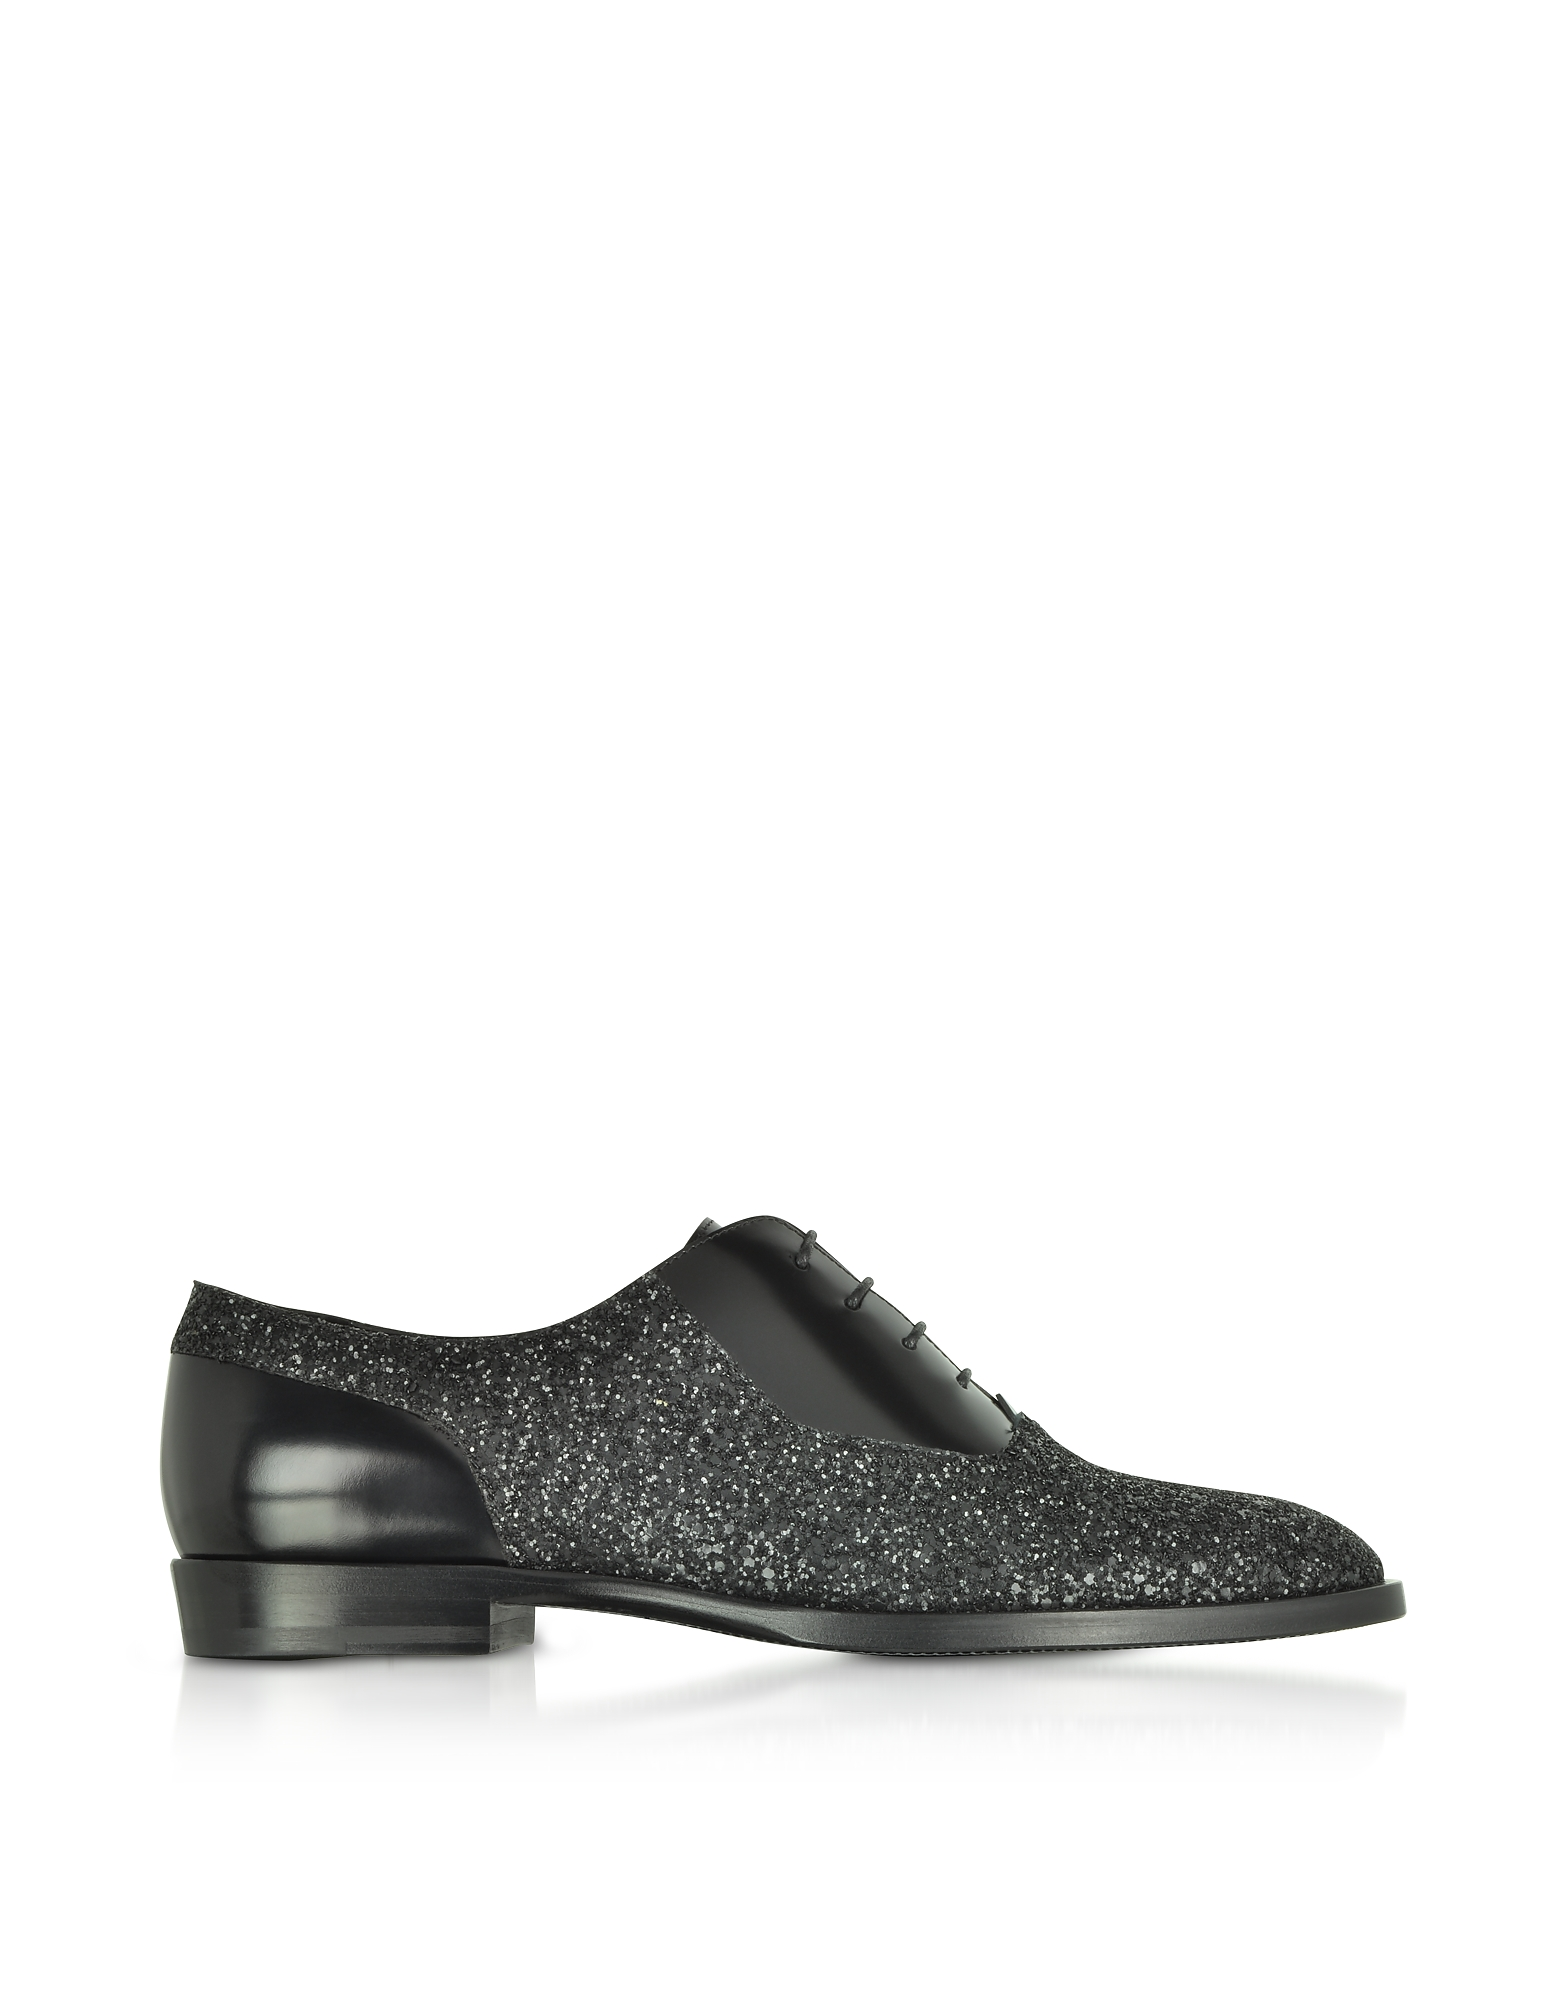 Jimmy Choo Shoes, Tyler OGA Black Leather and Glitter Fabric Oxford Shoes